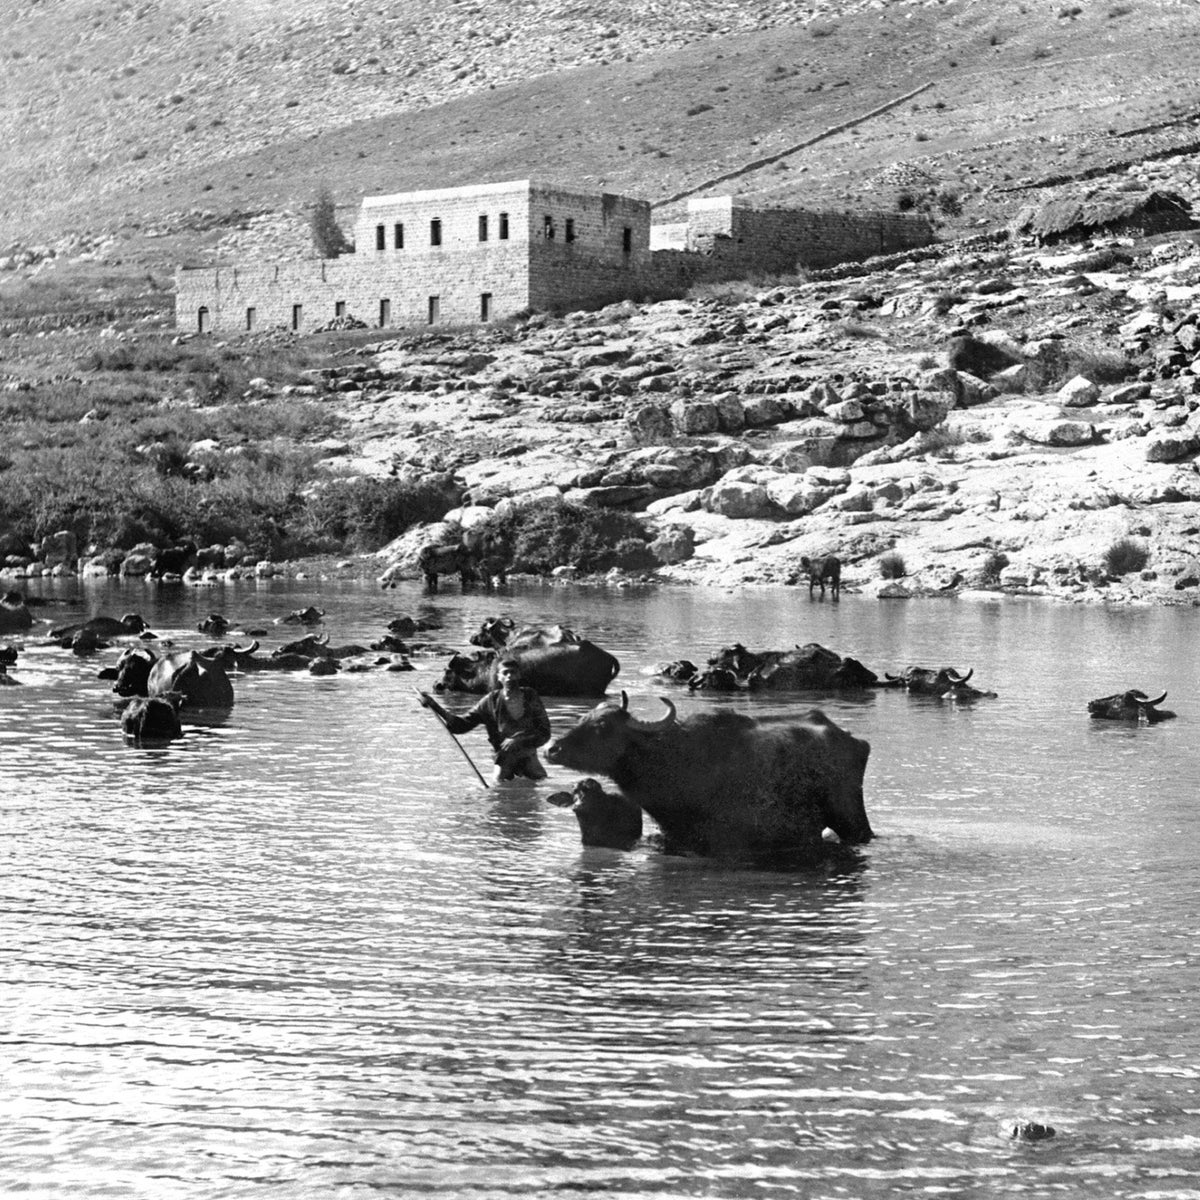 Water buffalo cooling off in Lake Hula, in the 1920s.